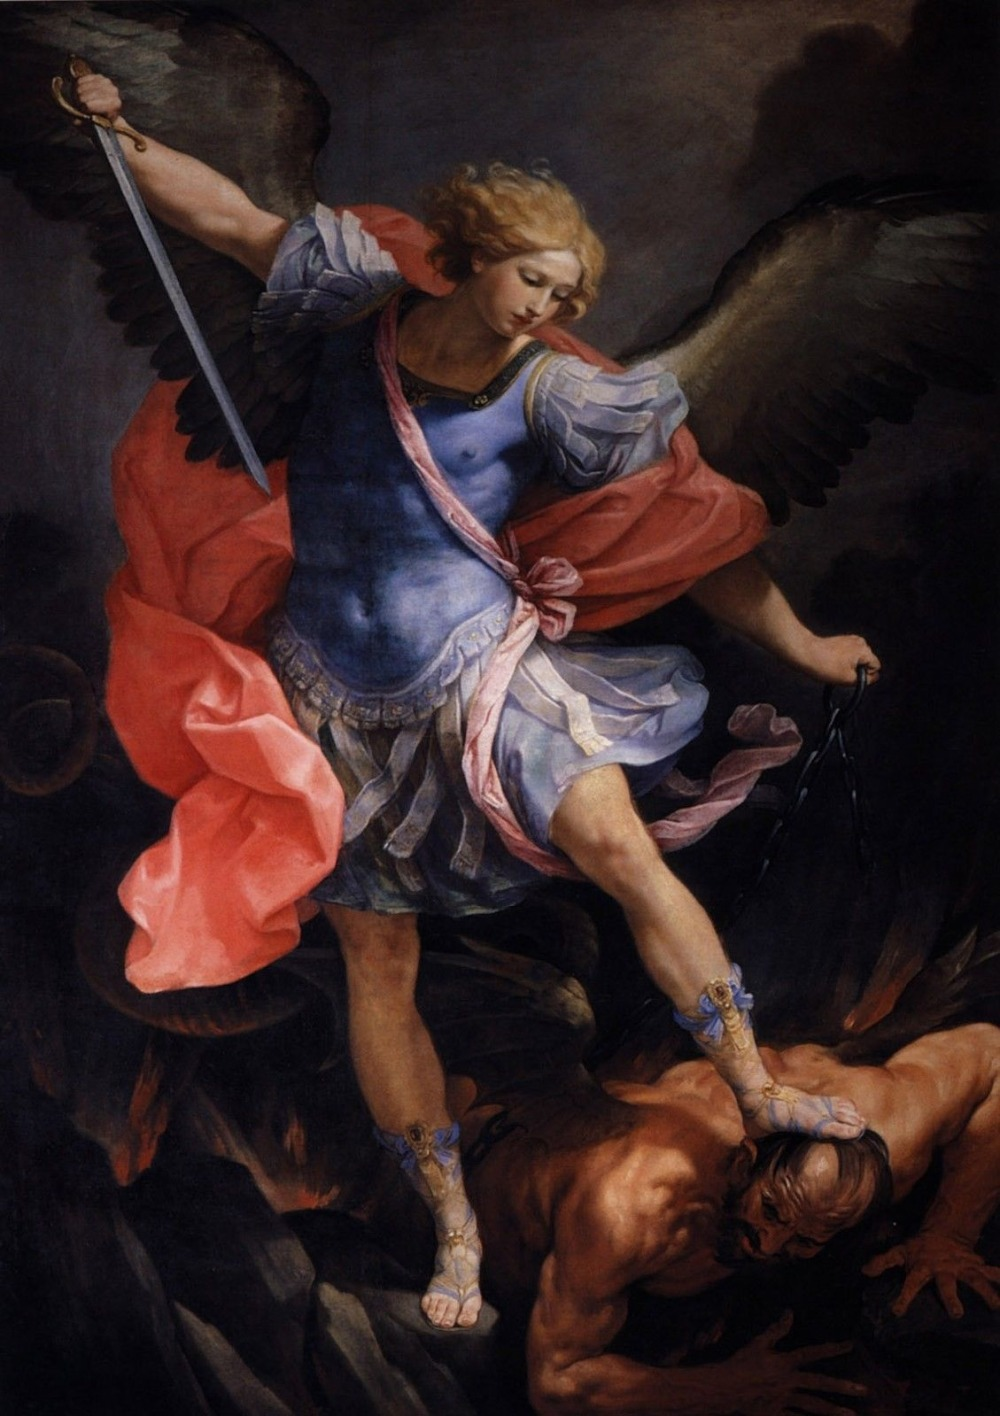 Guido Reni: The Archangel Michael Defeating Satan SILK POSTER Decorative painting  24x36inch